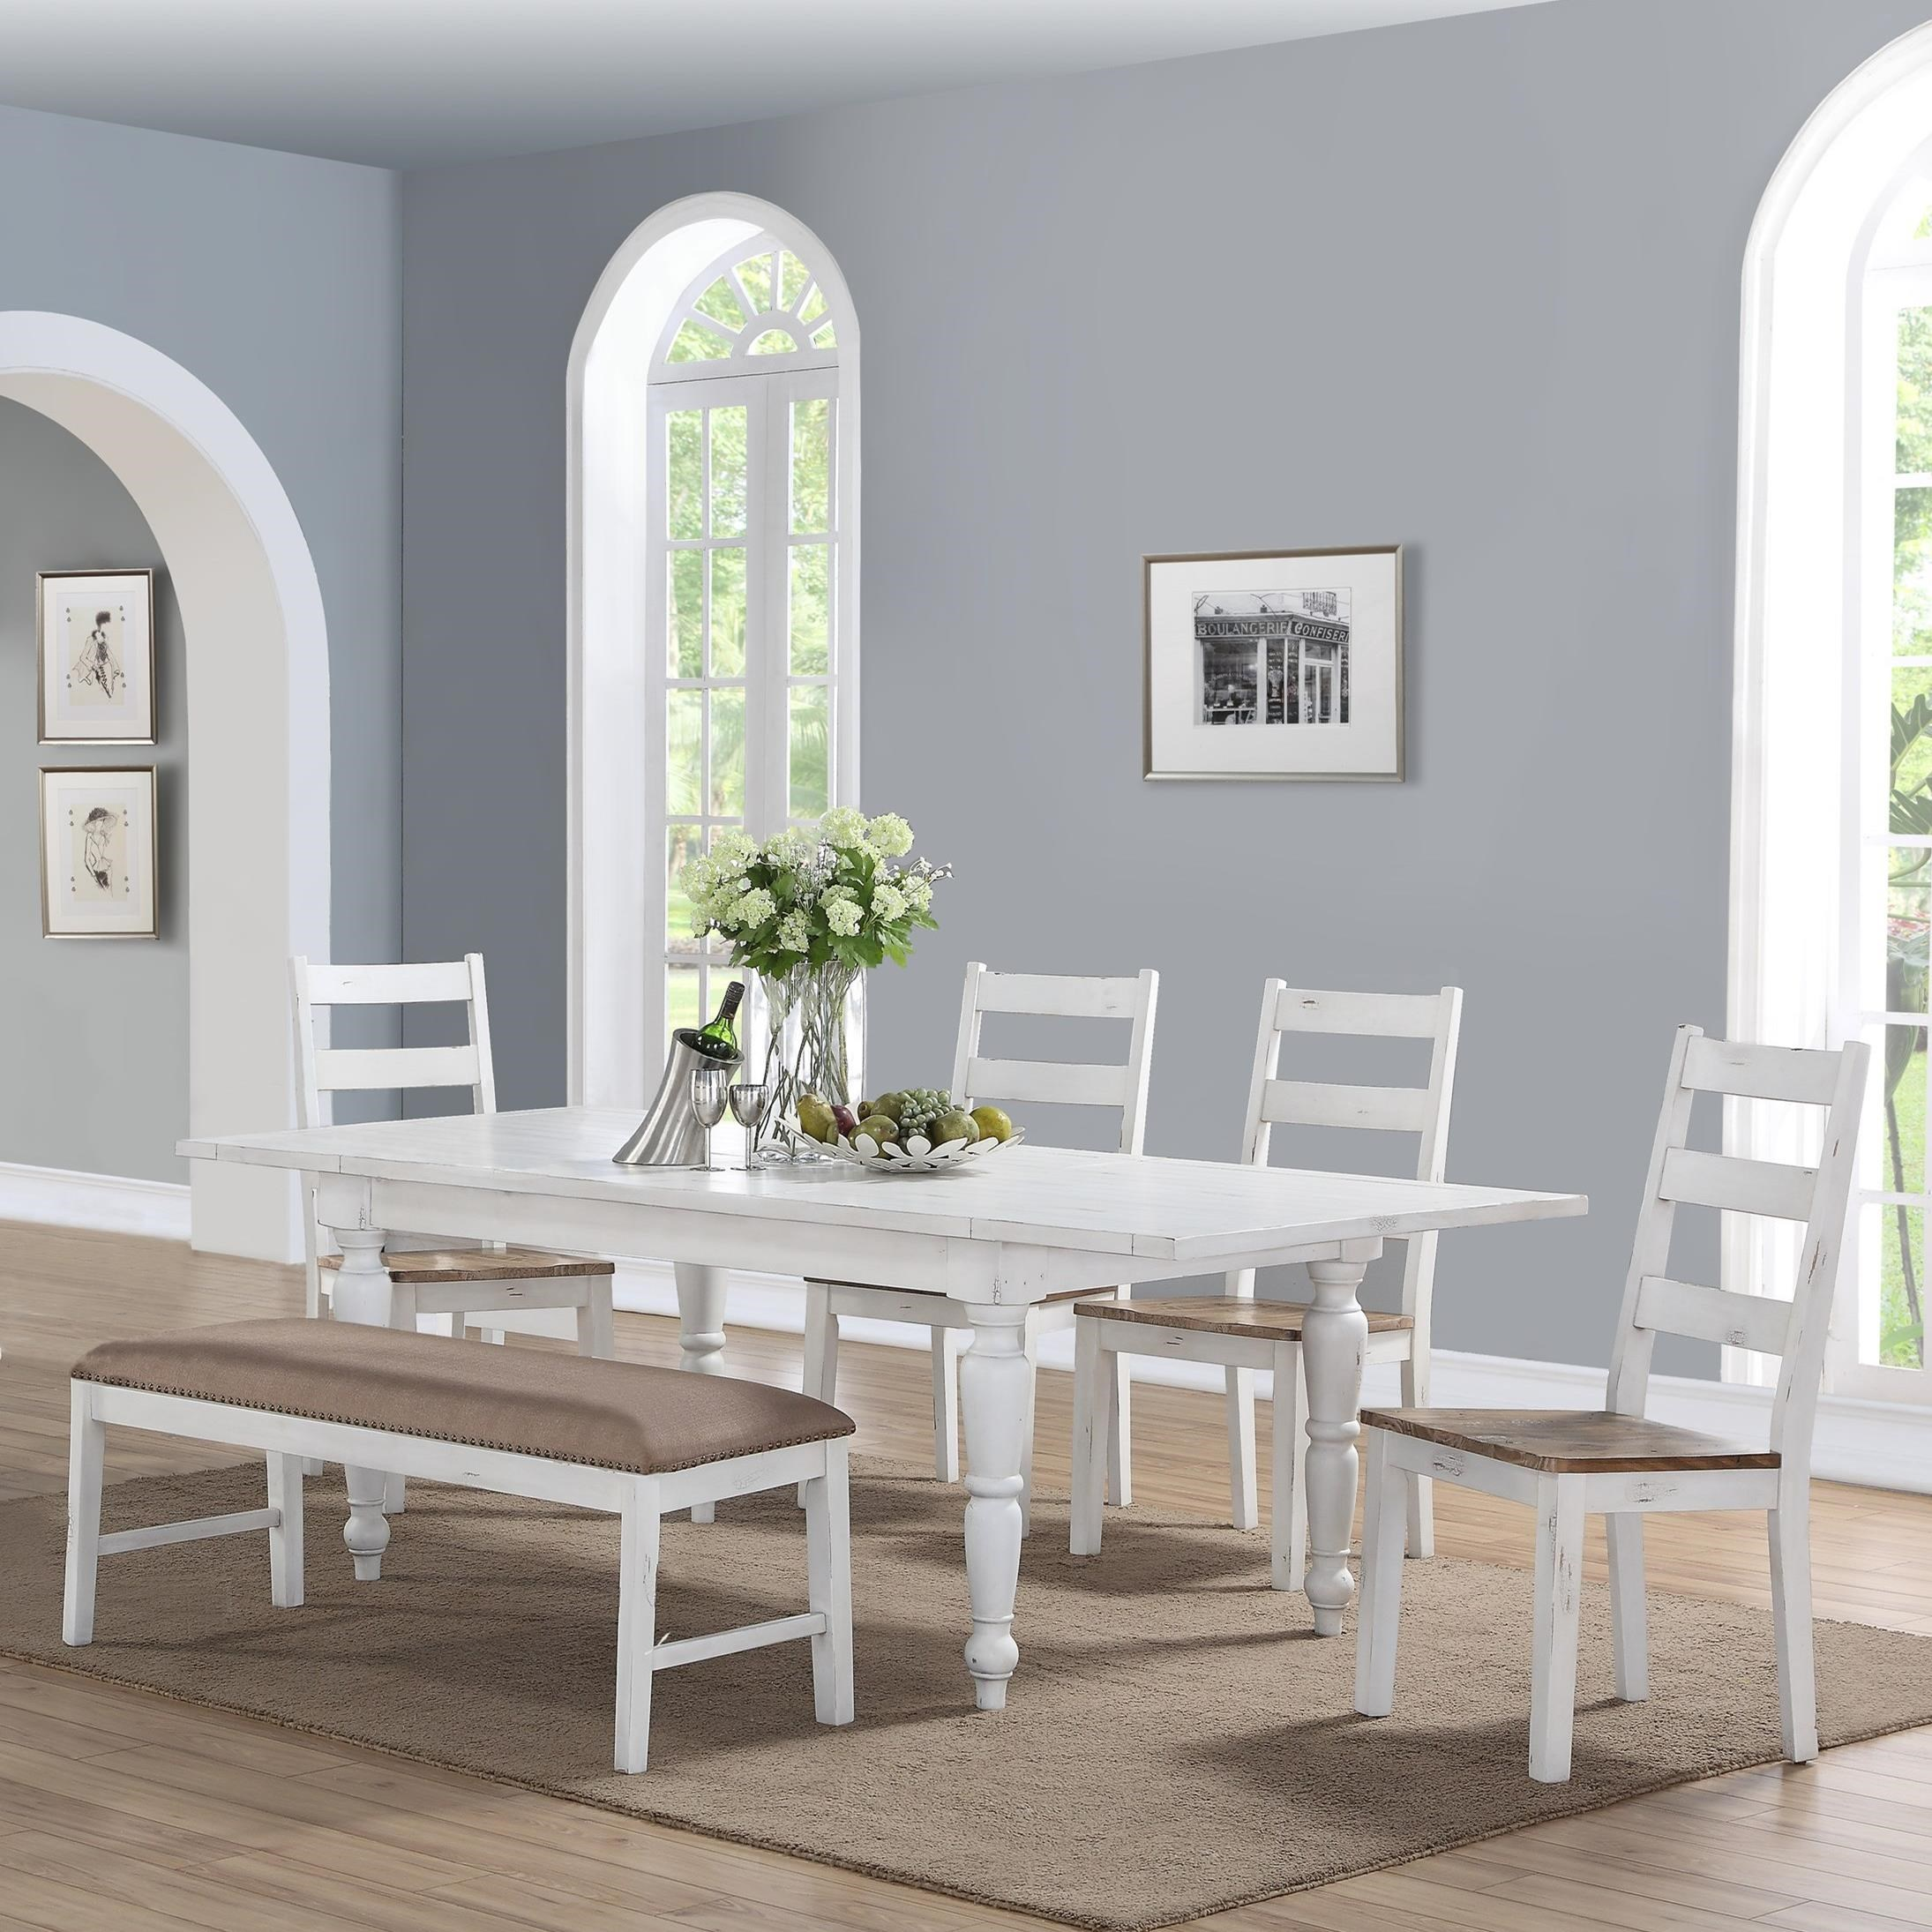 Abaco Dining Table and Chair Set with Bench by Emerald at Michael Alan Furniture & Design